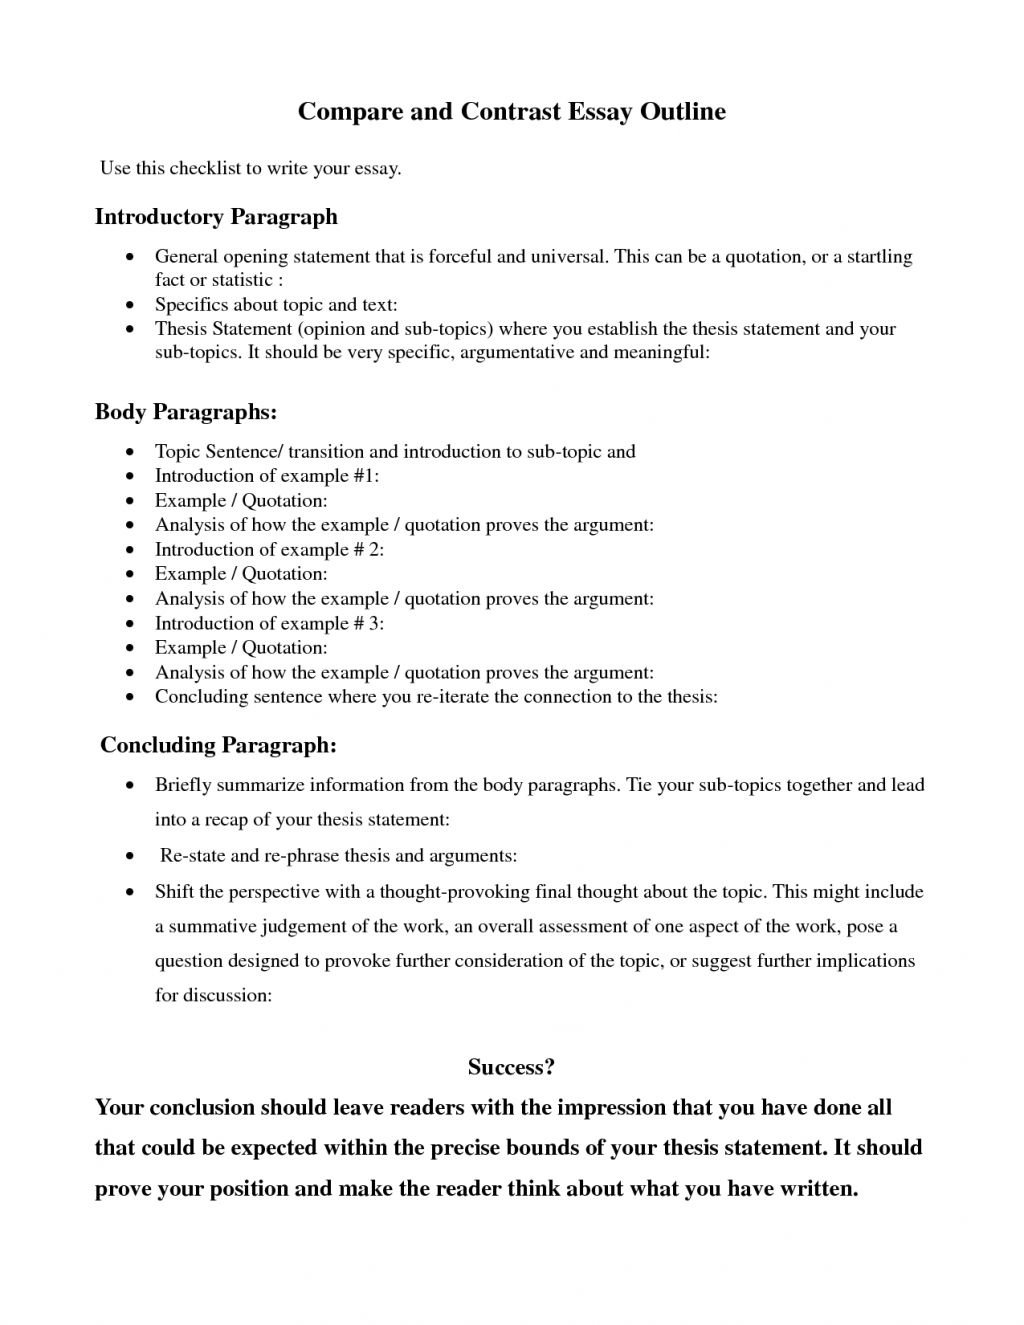 001 First Impression Essay Amazing Comparison Introductions Picture Inspirations Write Thesis Compare Contrast And 1024x1325 Awesome Opinion Making A Good Outline Full